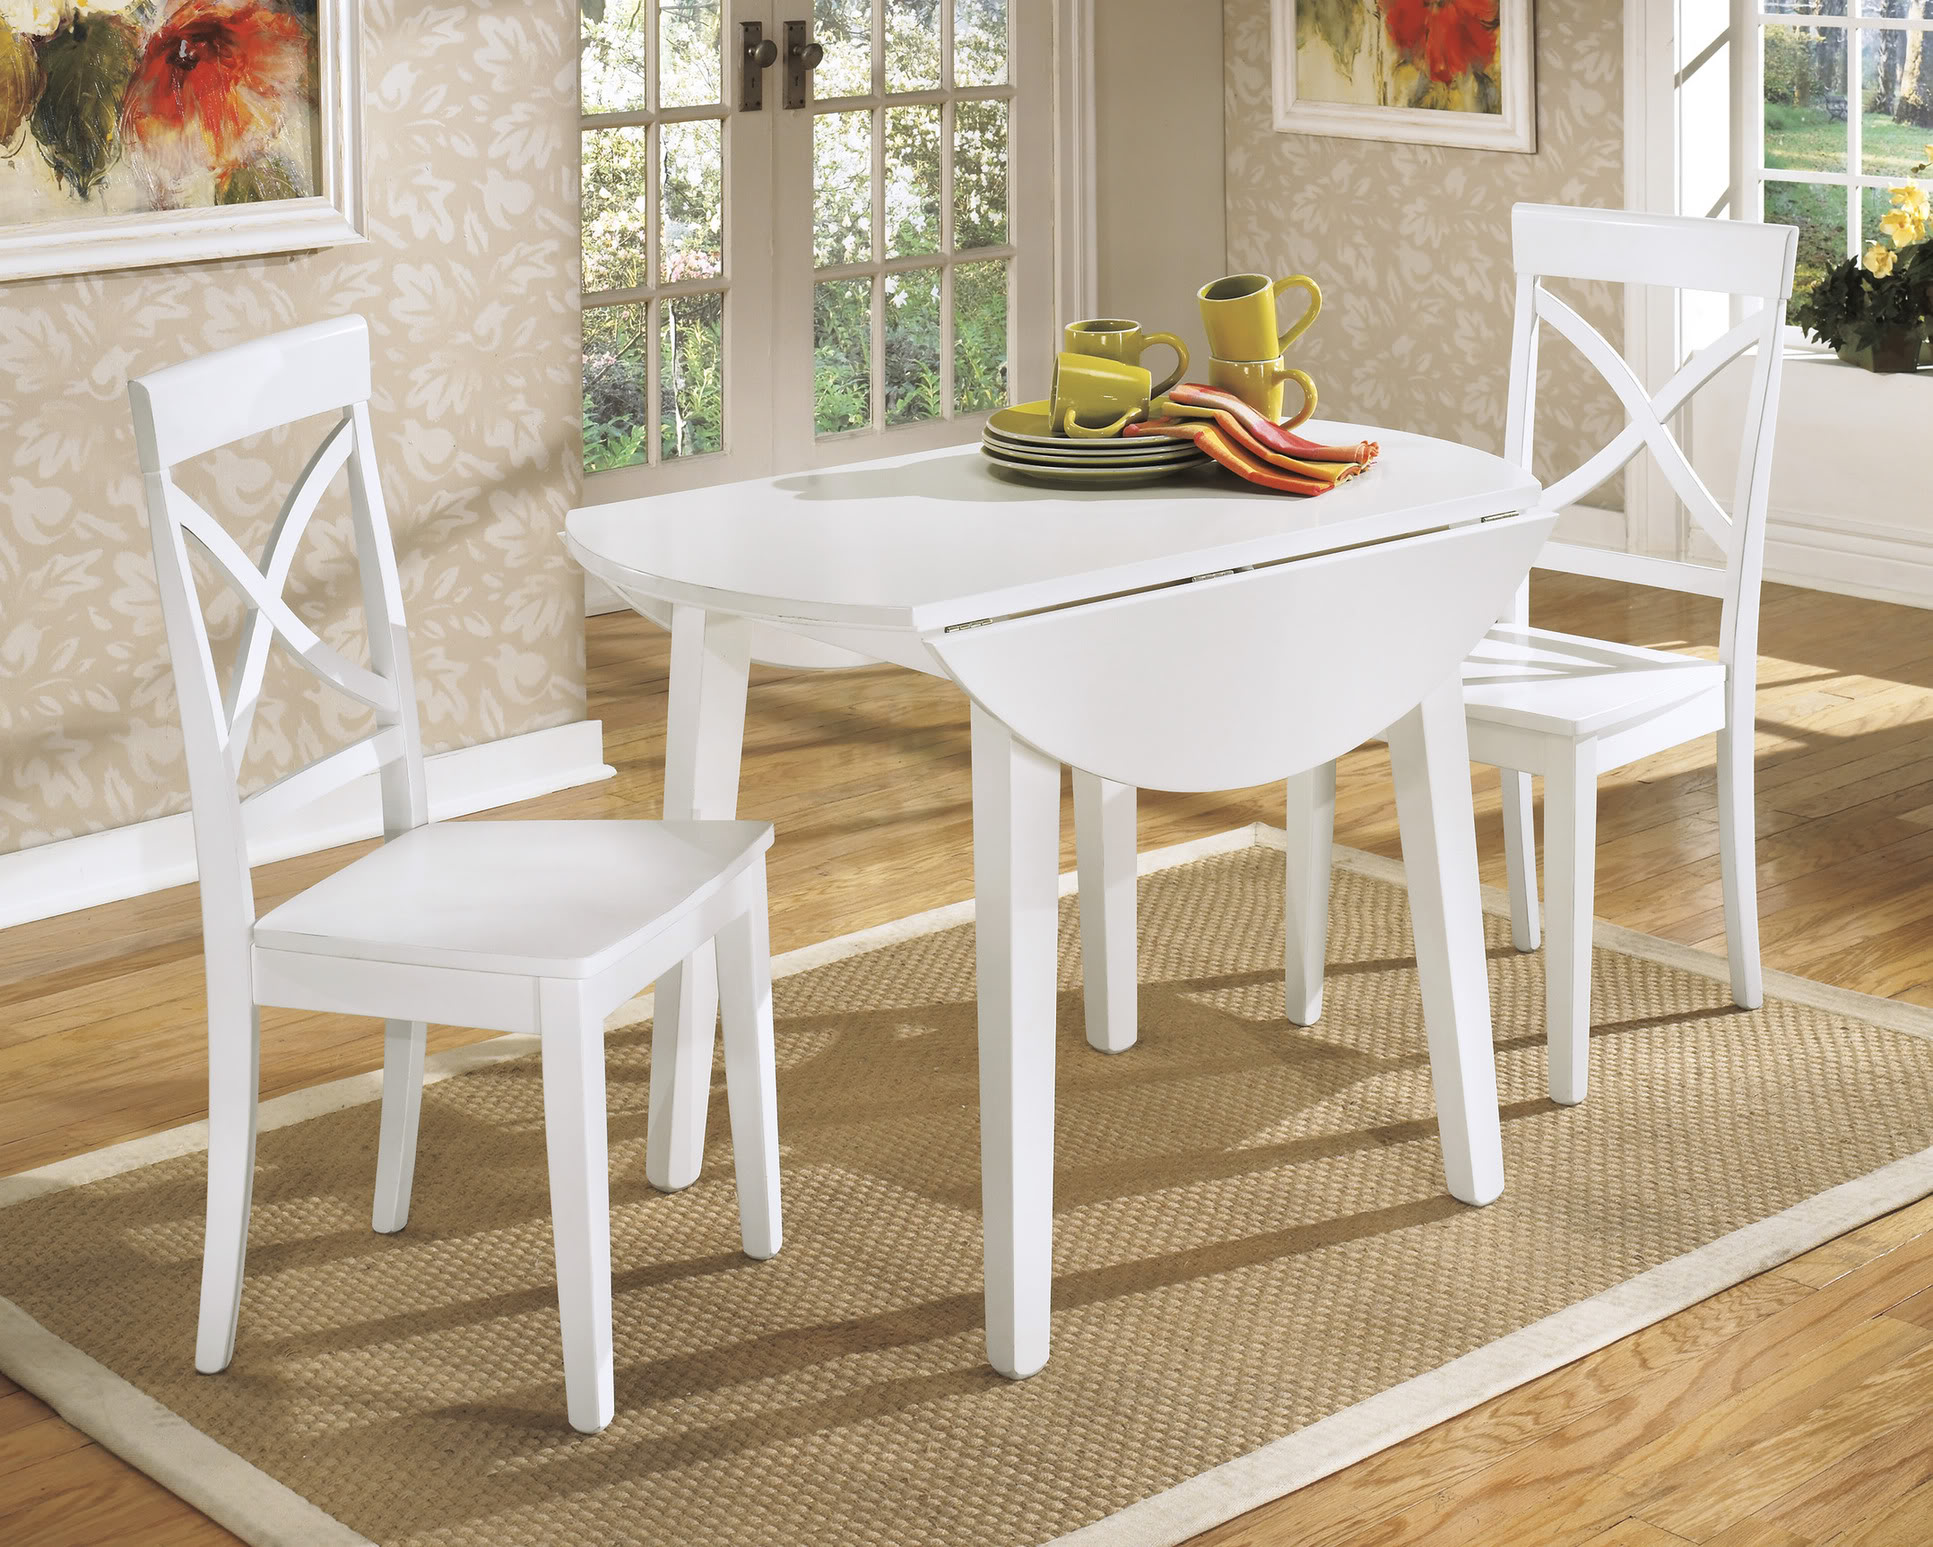 White Round Kitchen Table and Chairs Design – HomesFeed